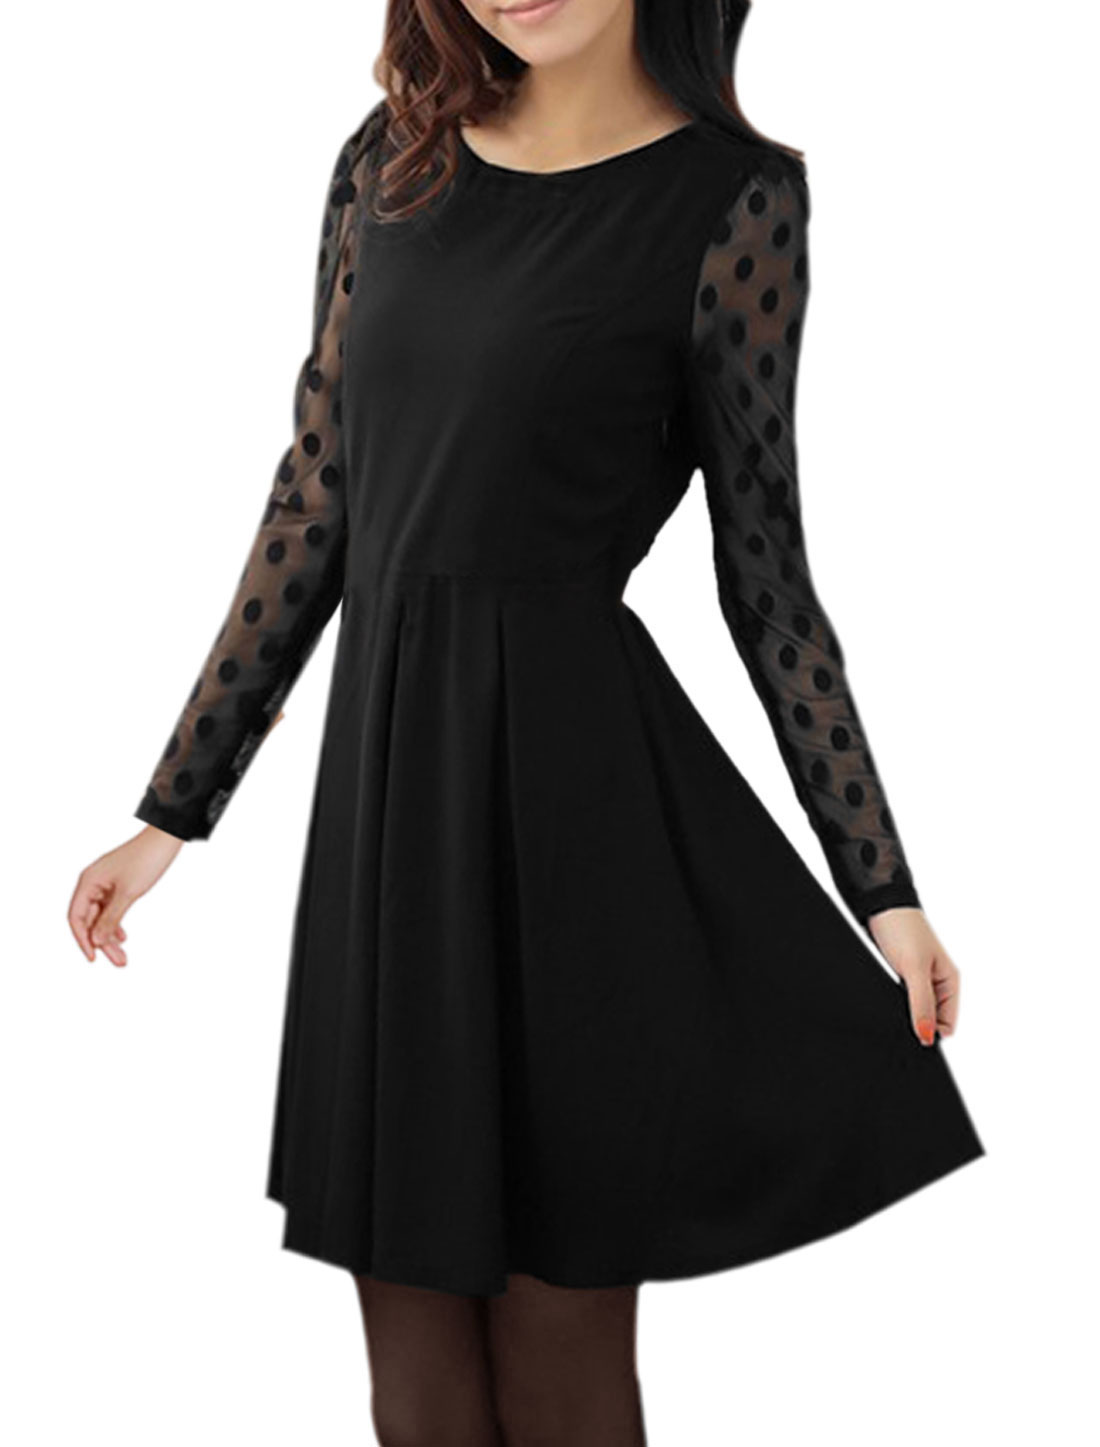 Ladies Black Long Sleeves Dots Pattern Casual Pullover Dress XS